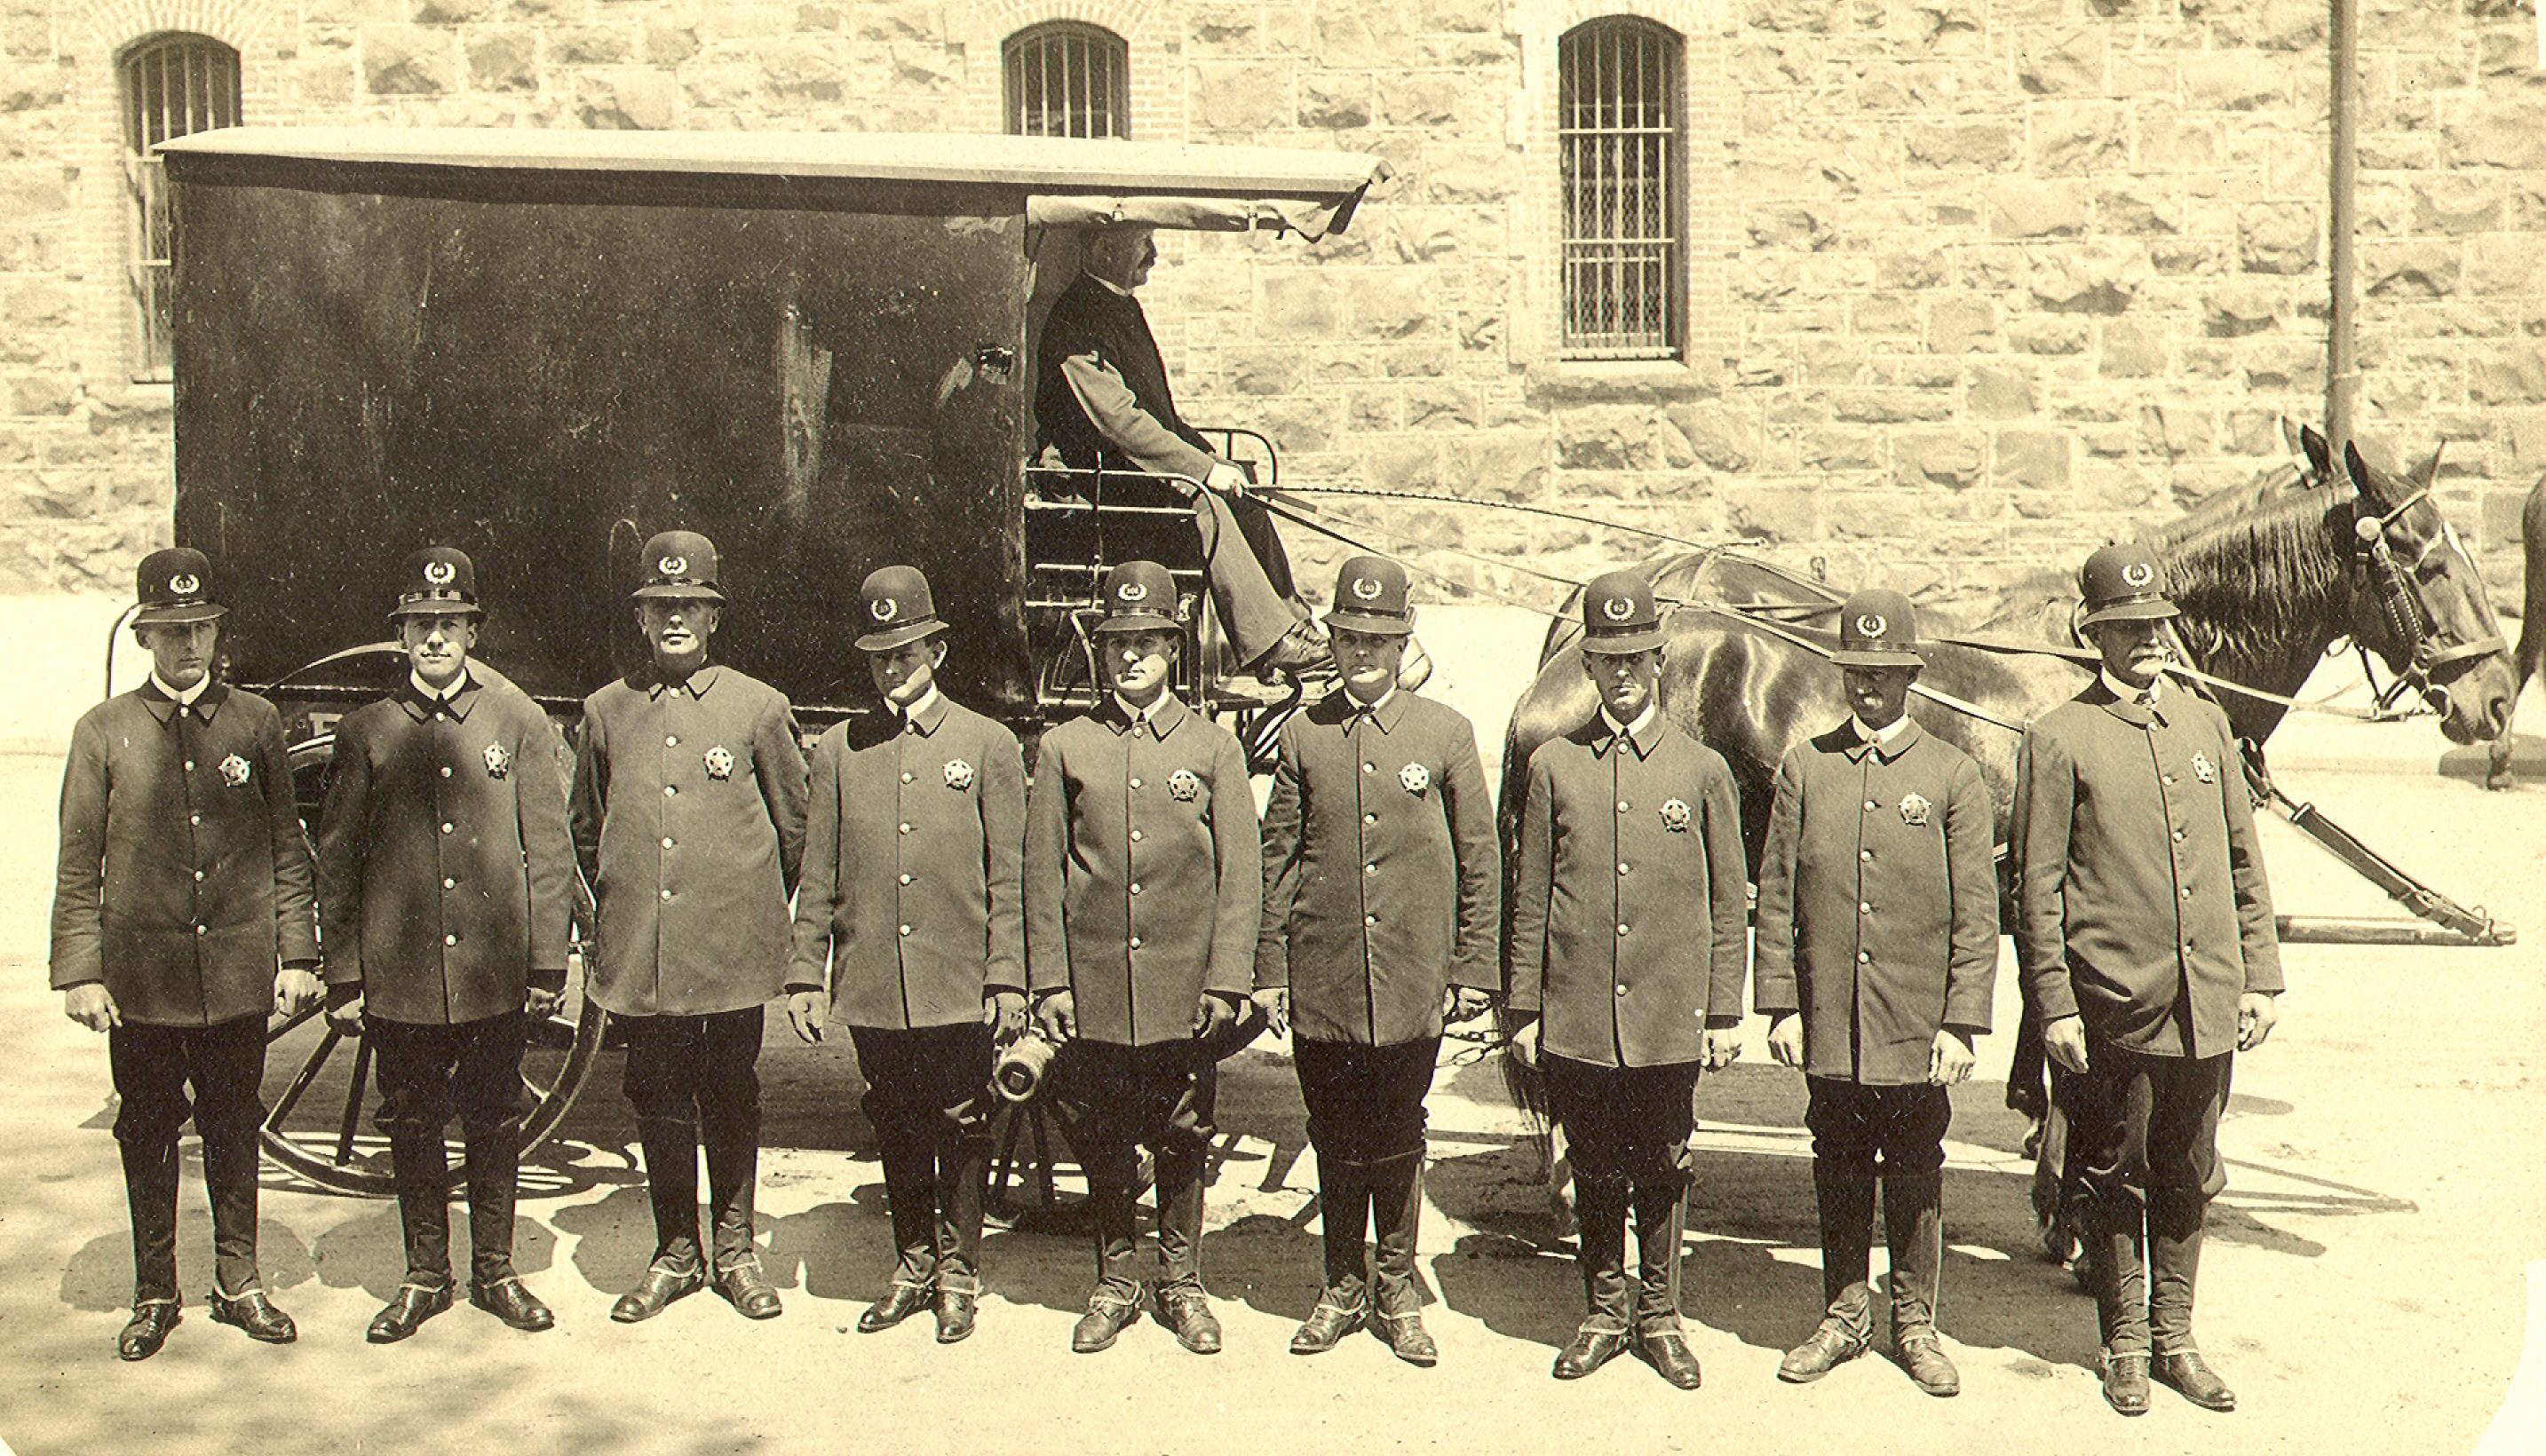 1890s paddy wagon and officers, probably at the Armory